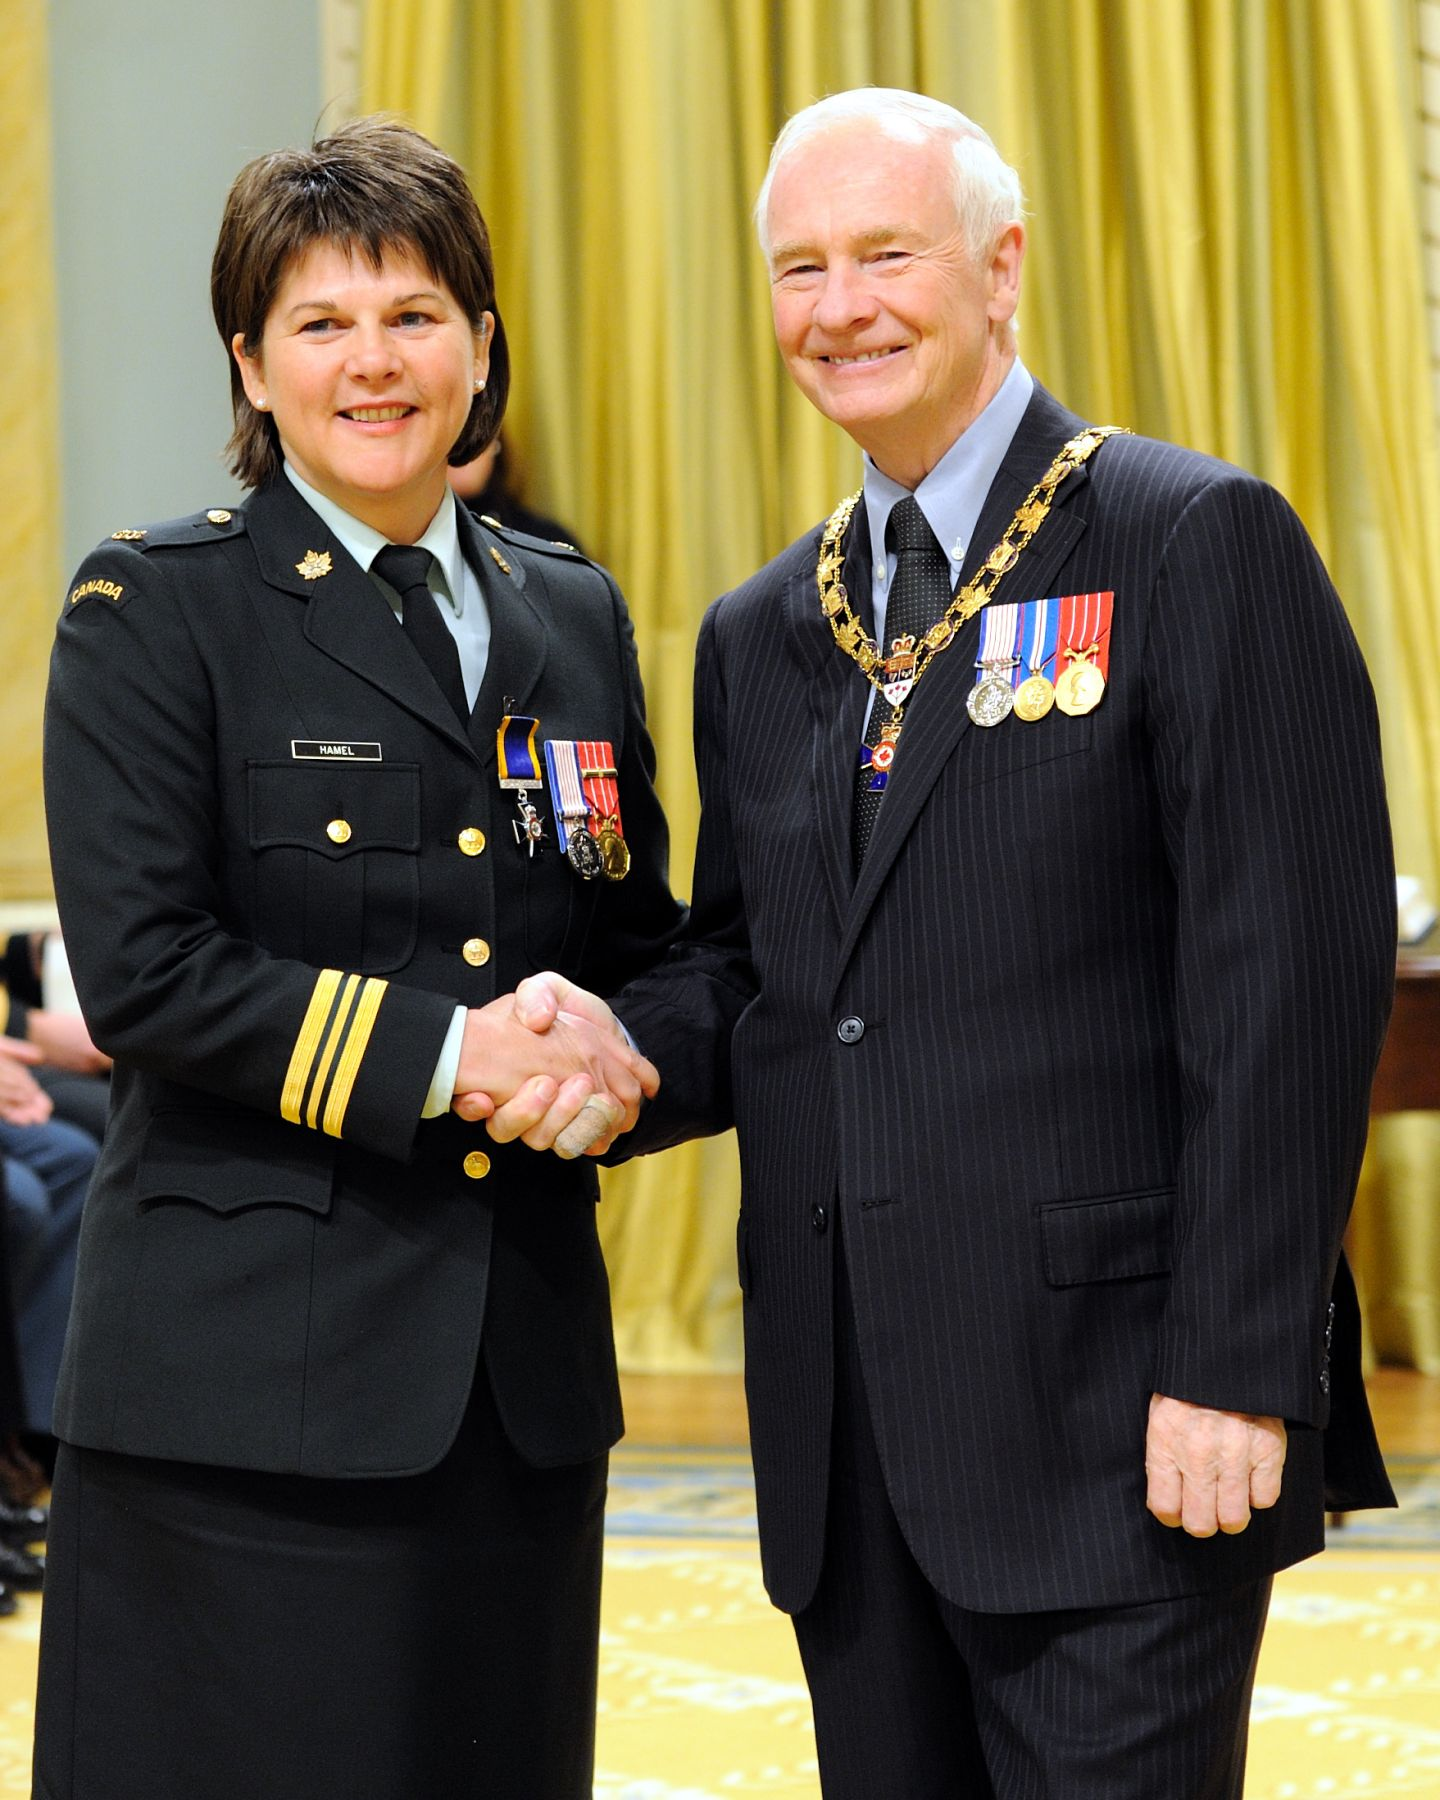 His Excellency presented the Order of Military Merit at the Member level (M.M.M.) to Major Carmen Hamel, M.M.M., C.D., Regional Cadet Instructor School Eastern, Richelain, Quebec.